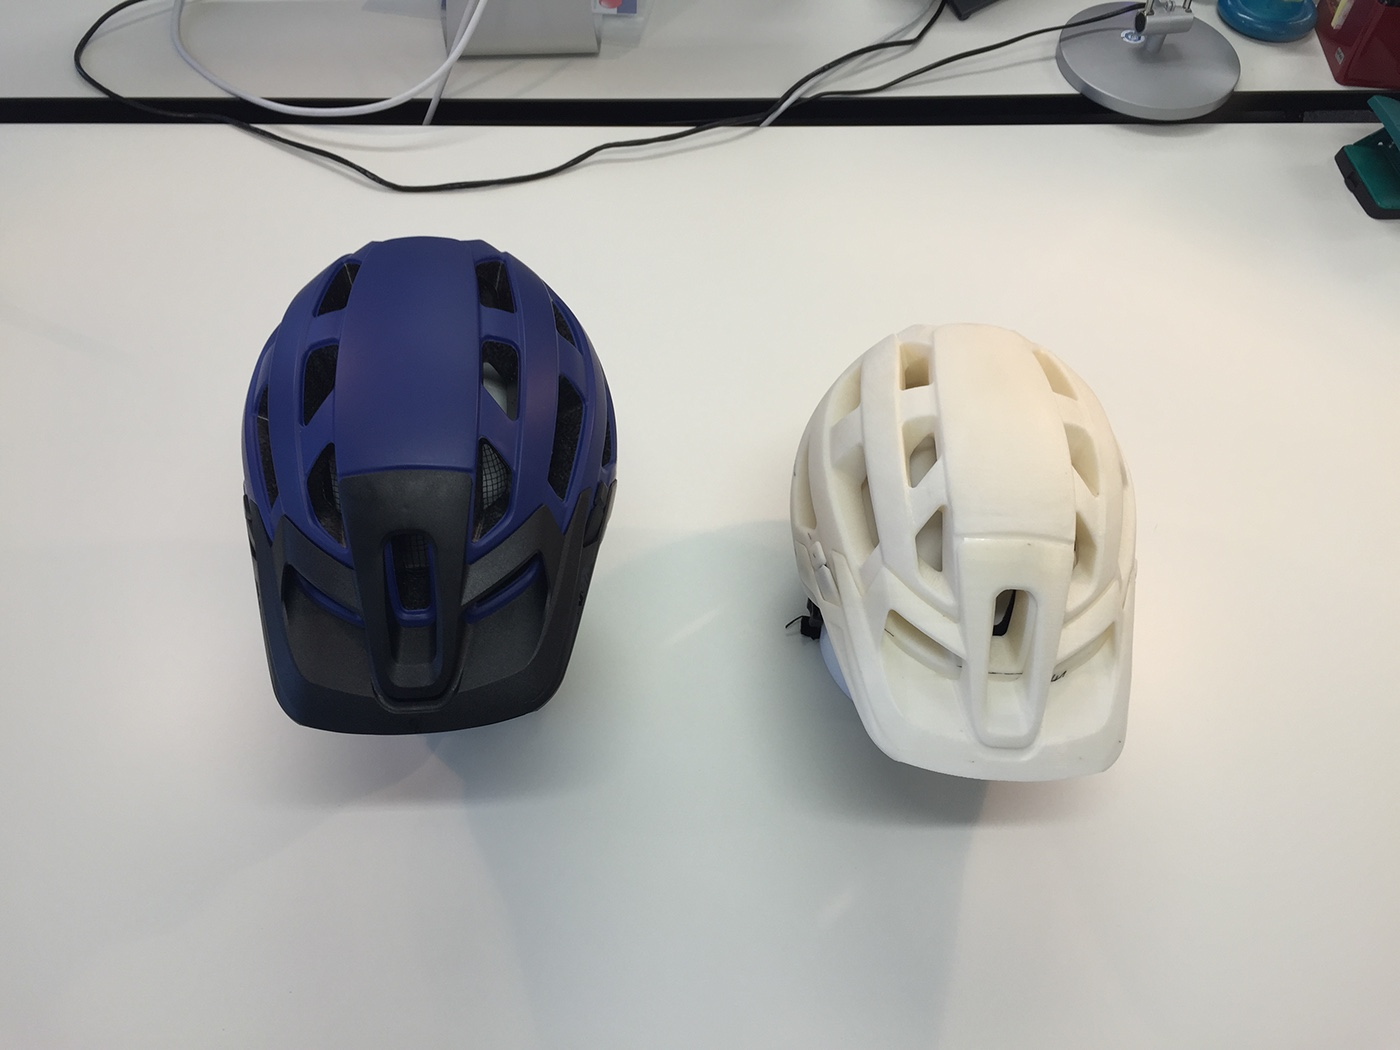 Noah Sussman Sports Product designer Uvex sports helmet prototype